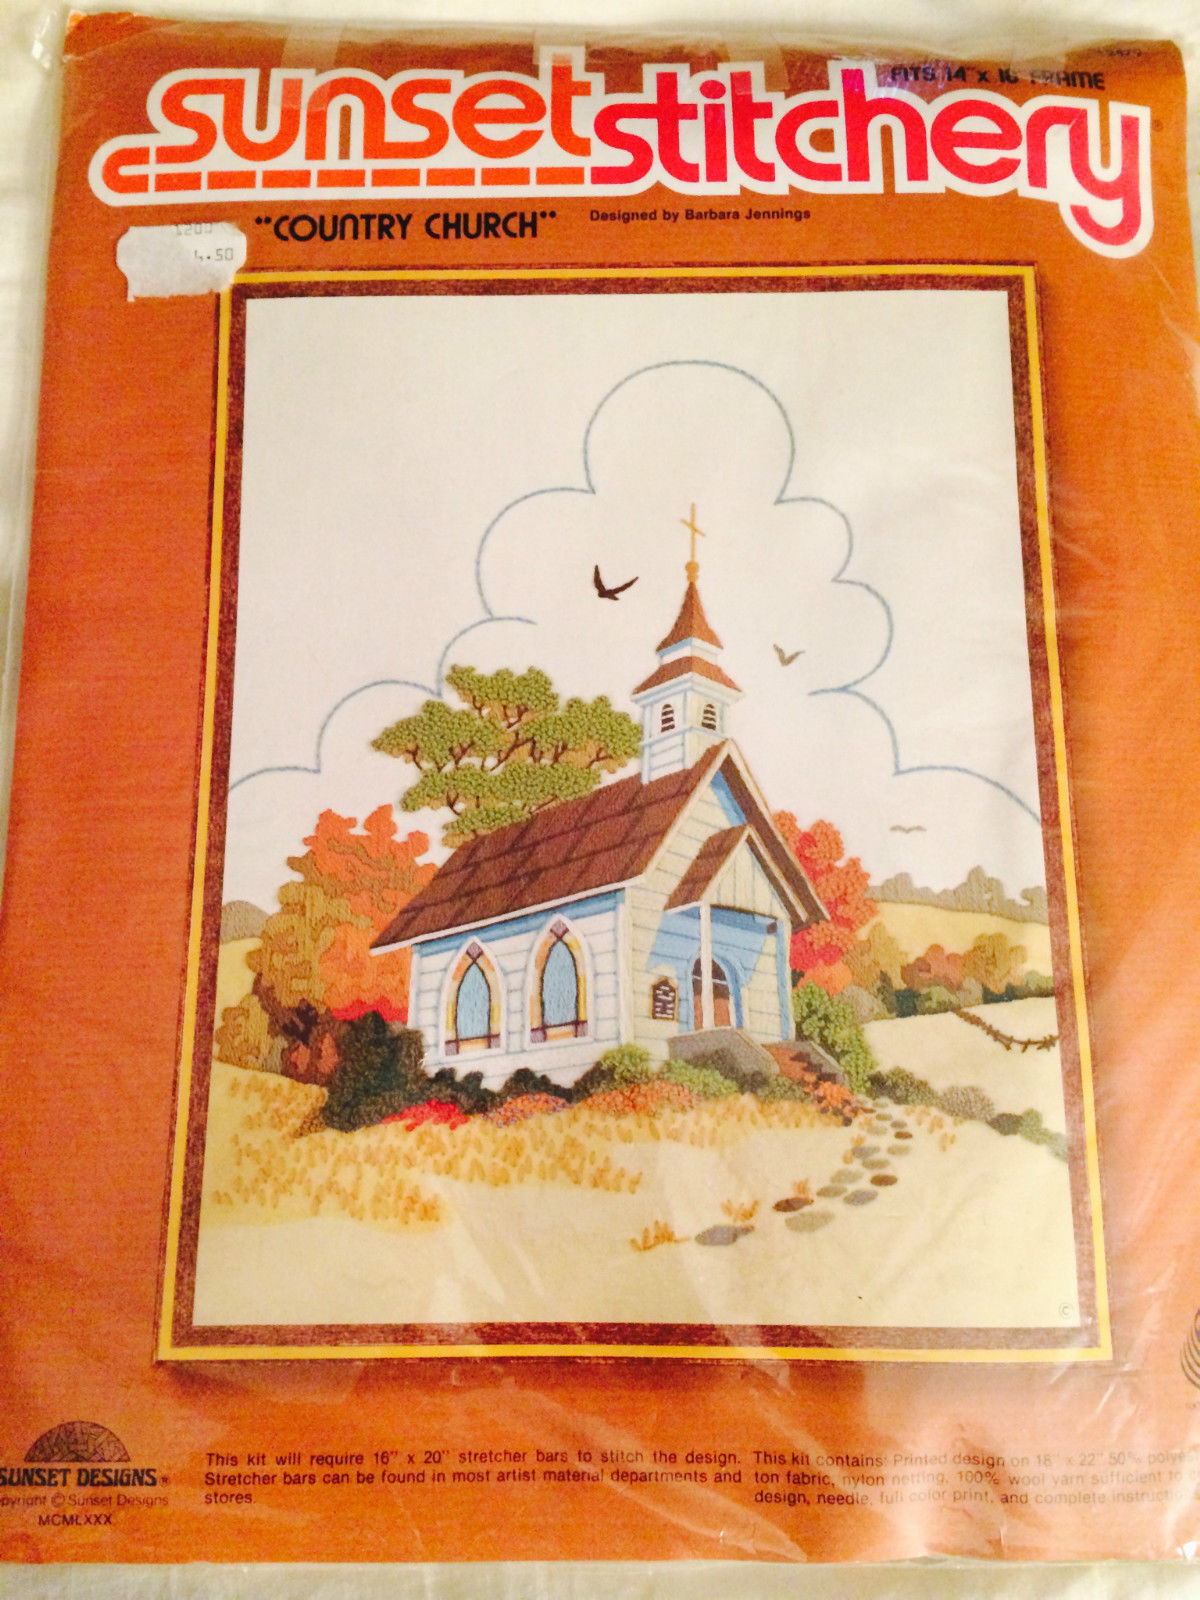 Sunset Stitchery Country Church Embroidery And Similar Items 57